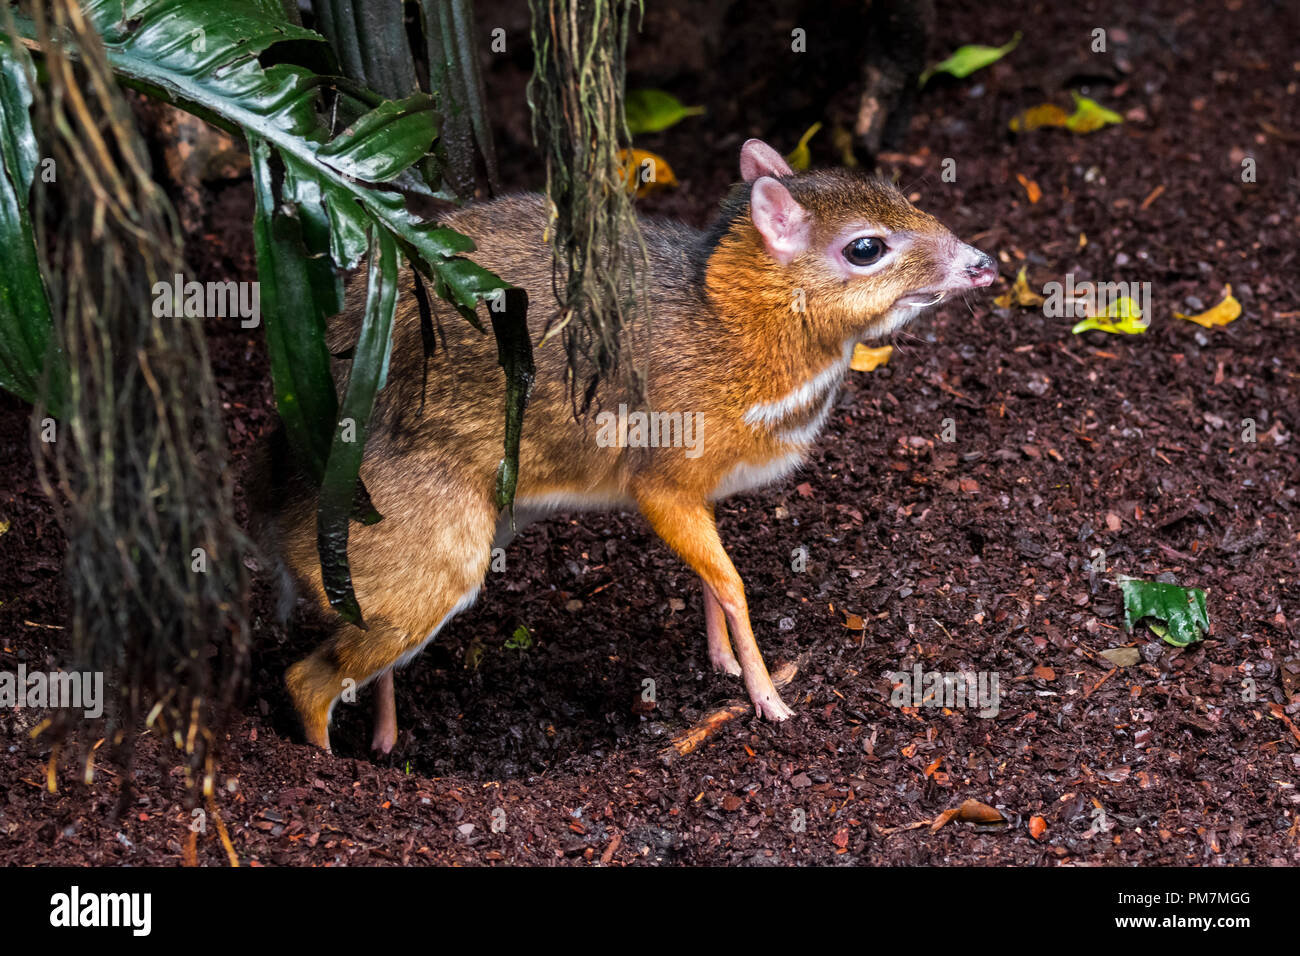 Lesser mouse-deer / kanchil / lesser Malay chevrotain (Tragulus kanchil) smallest hoofed mammal showing elongated canine teeth, Southeast Asia - Stock Image